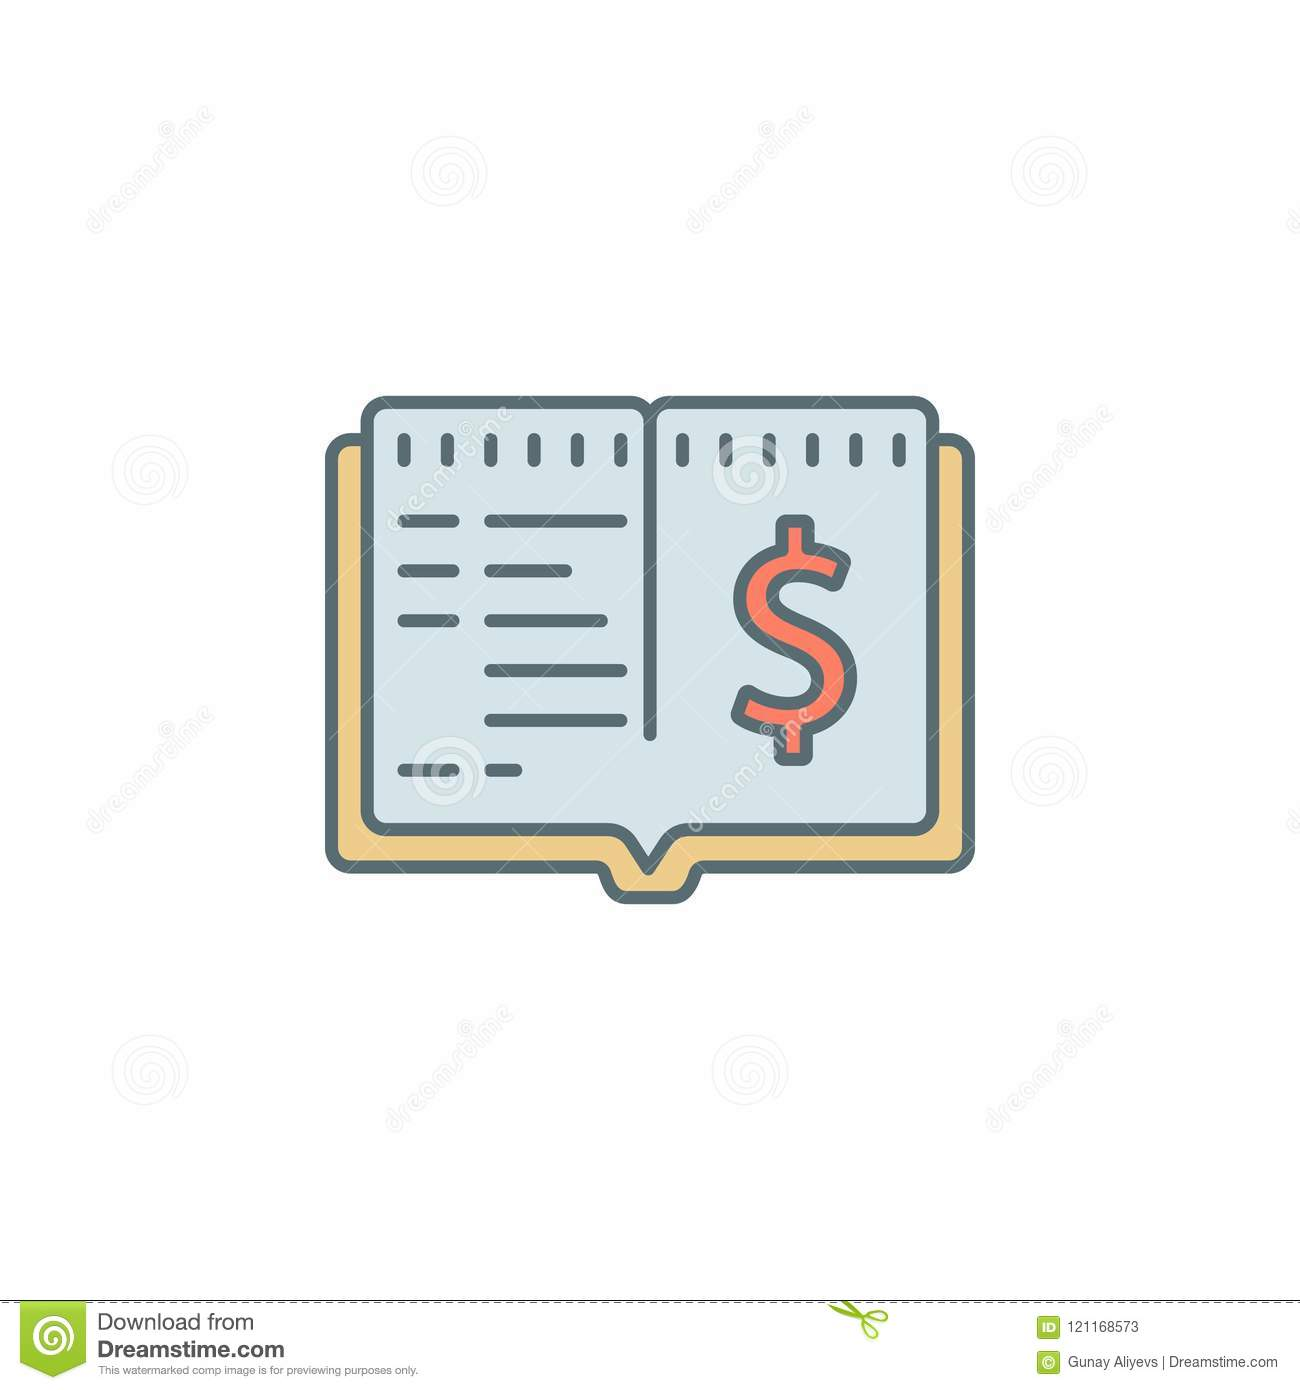 Cash Book Dusk Style Line Icon  Element Of Banking Icon For Mobile